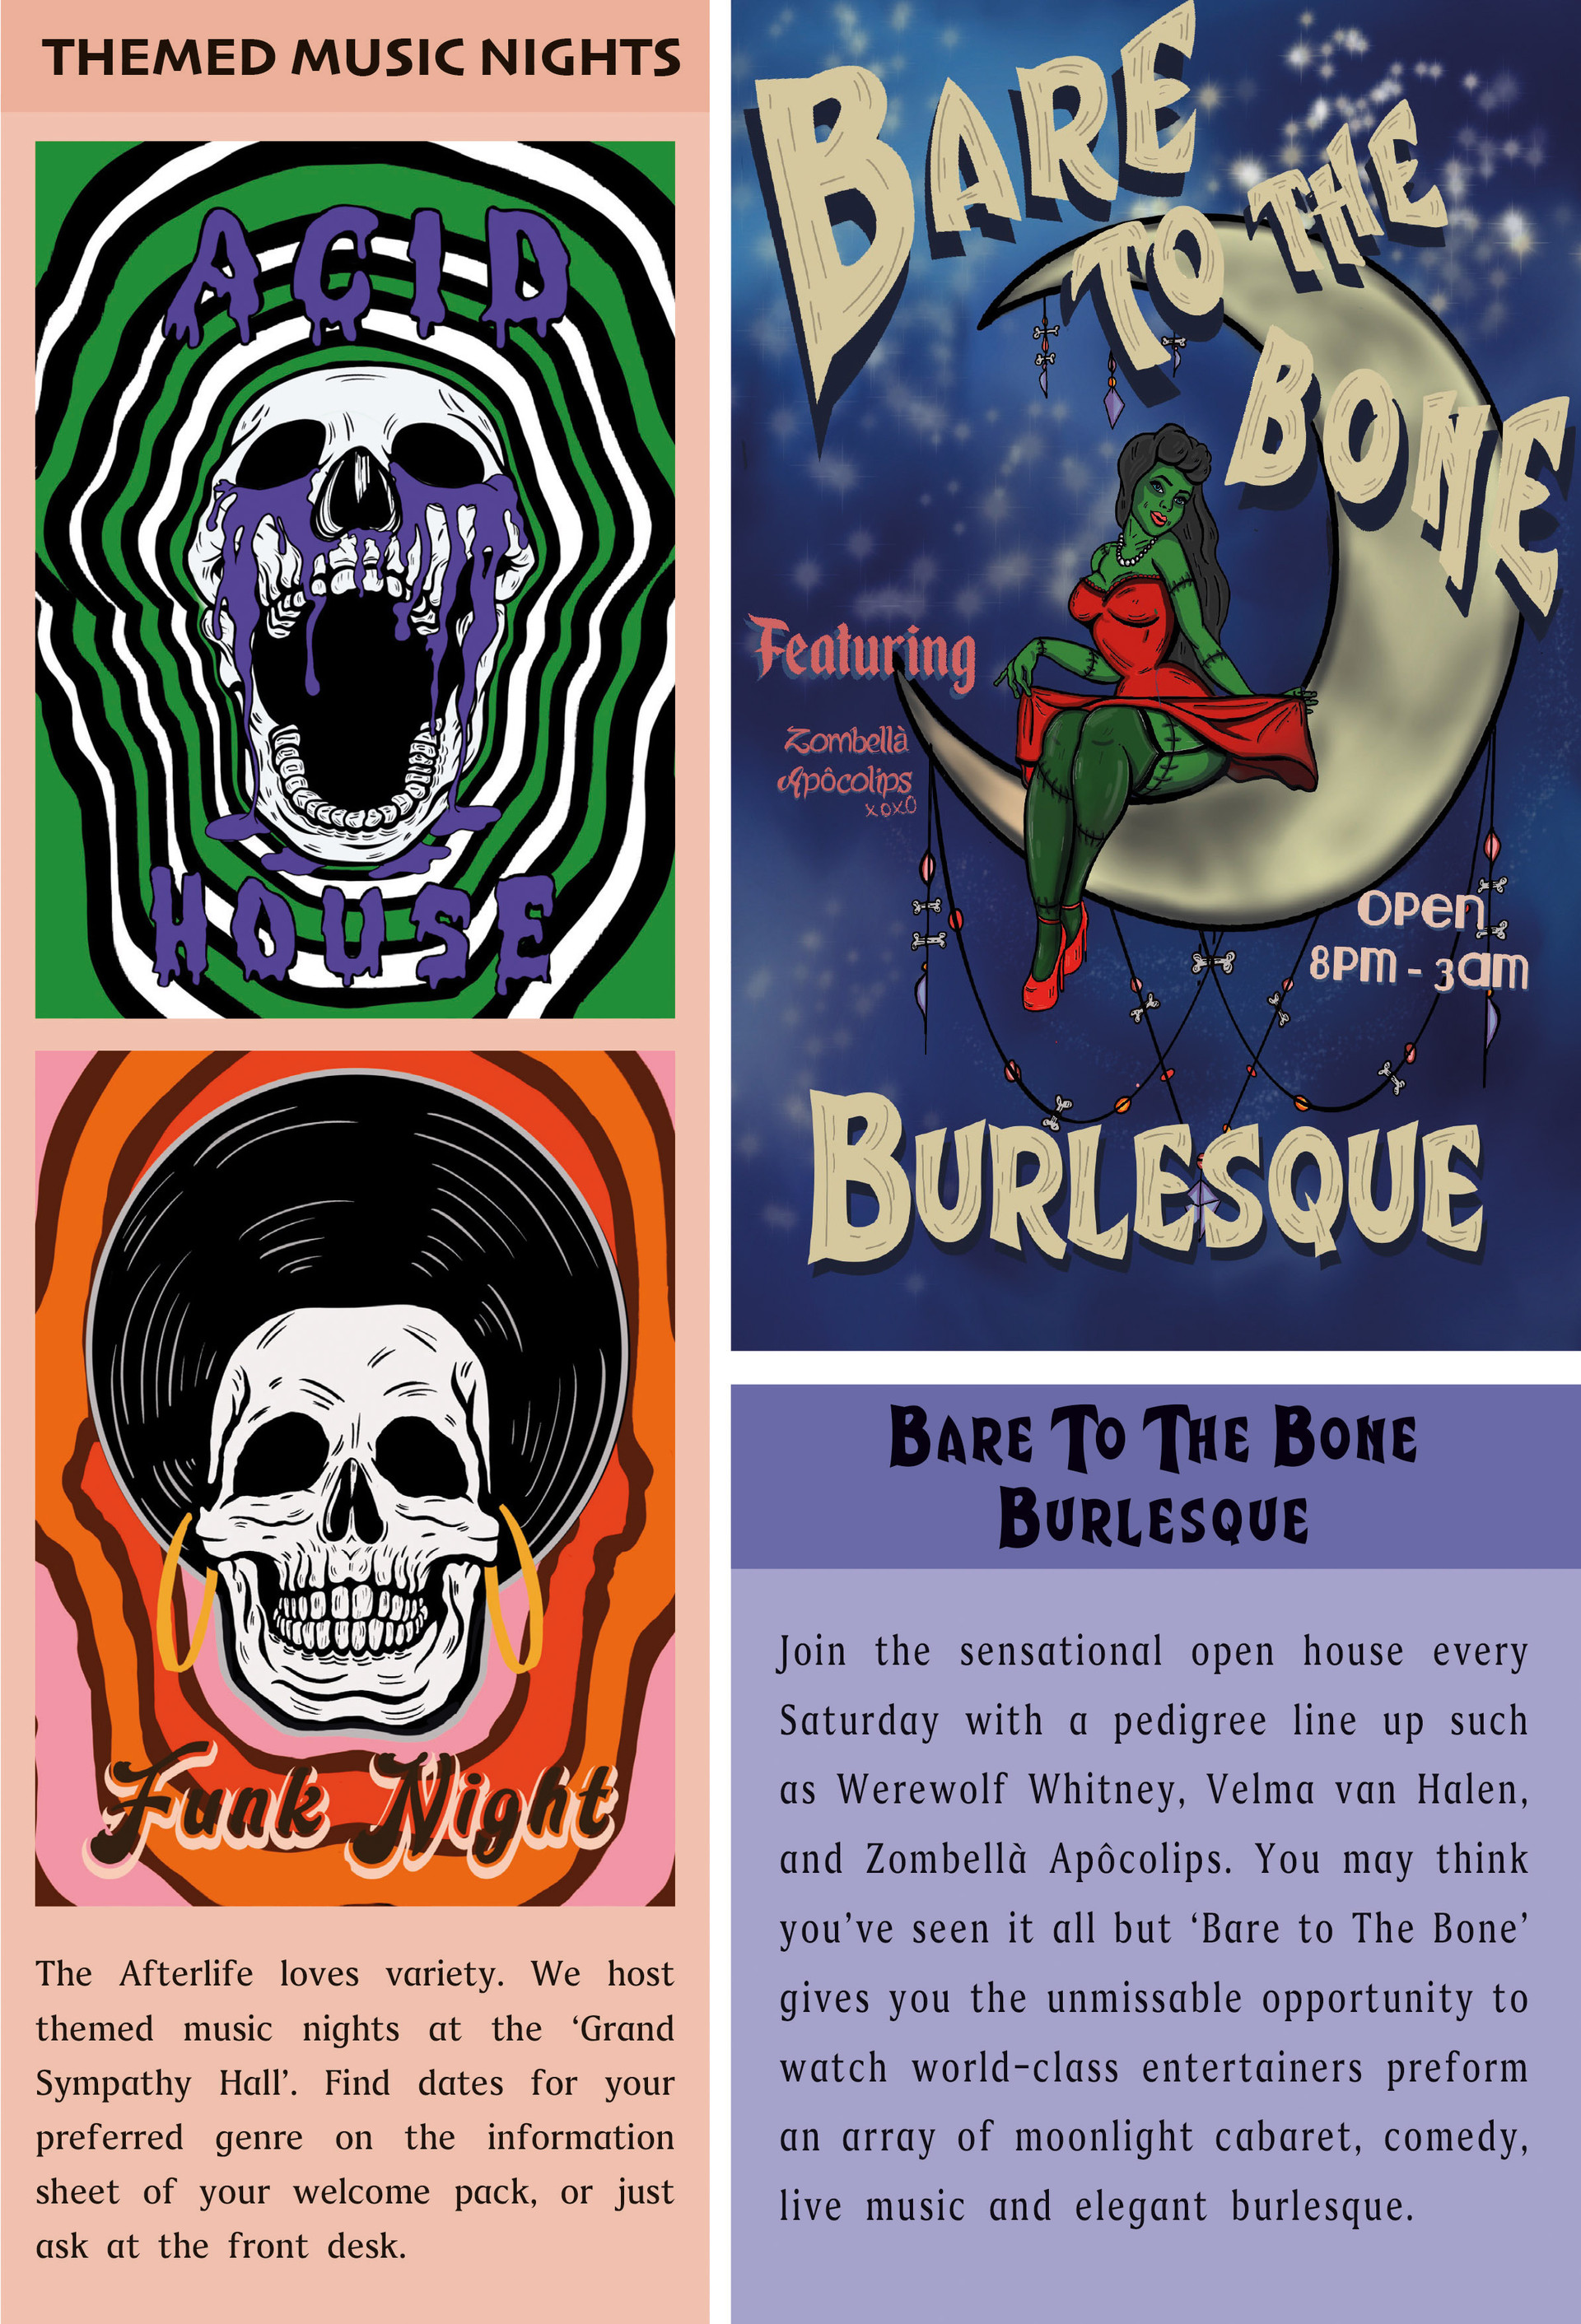 Acid House, Funk Night and Bare to the Bone Burlesque from Afterlife-A guide for the Recently Deceased.